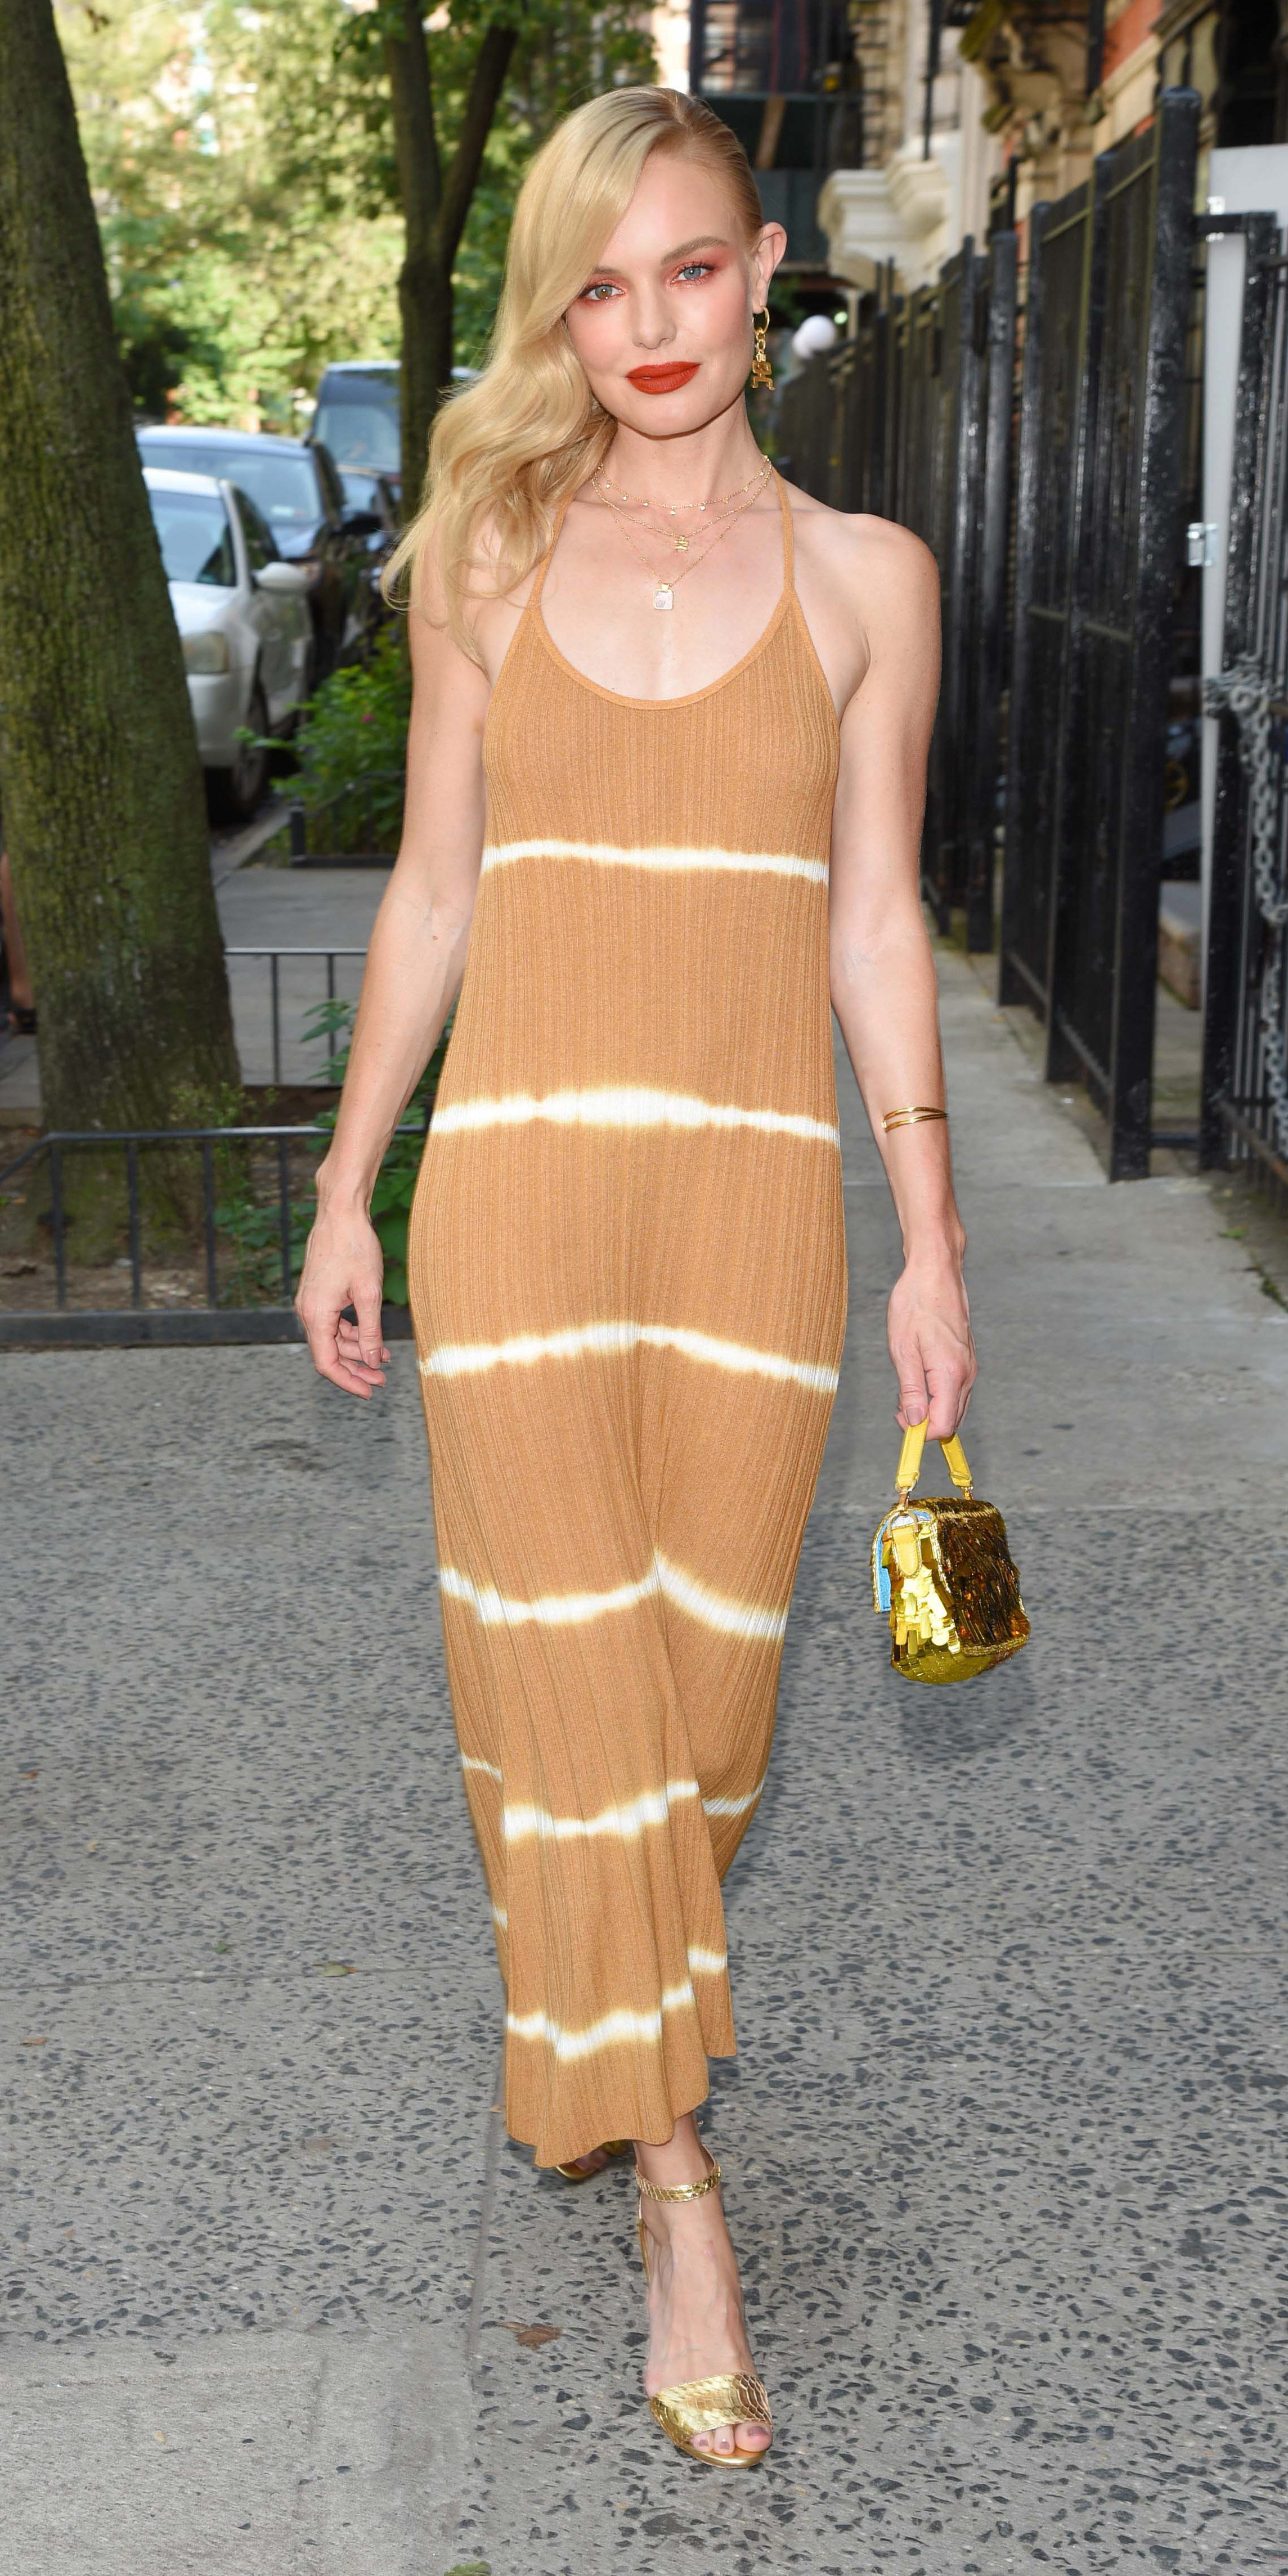 - New York, NY - 08/08/2019 - Kate Bosworth spotted downtown in a pretty full length dress and pretty Missoma London jewelry. -PICTURED: Kate Bosworth -PHOTO by: Michael Simon/startraksphoto.com -MS92422 Editorial - Rights Managed Image - Please contact www.startraksphoto.com for licensing fee Startraks Photo Startraks Photo New York, NY For licensing please call 212-414-9464 or email sales@startraksphoto.com Image may not be published in any way that is or might be deemed defamatory, libelous, pornographic, or obscene. Please consult our sales department for any clarification or question you may have Startraks Photo reserves the right to pursue unauthorized users of this image. If you violate our intellectual property you may be liable for actual damages, loss of income, and profits you derive from the use of this image, and where appropriate, the cost of collection and/or statutory damages.